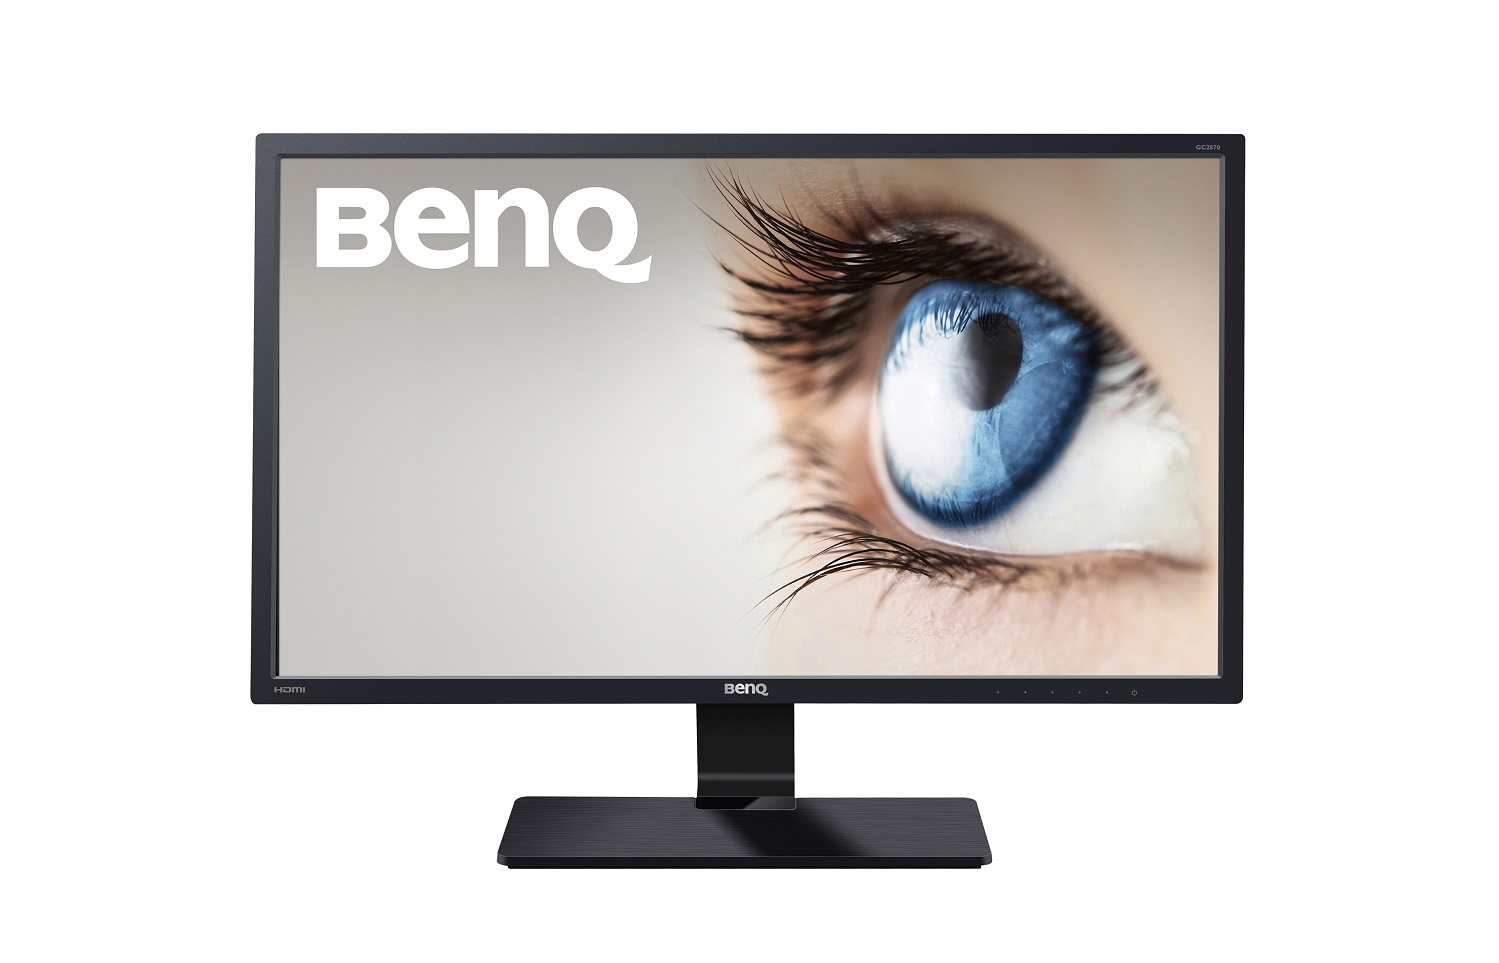 "BenQ LCD GC2870H 28"" W VA LED/20M:1/5ms/300nits/D-SUB/2xHDMI/VESA/Low Blue Light/Flicker-free/AMA/Senseye"